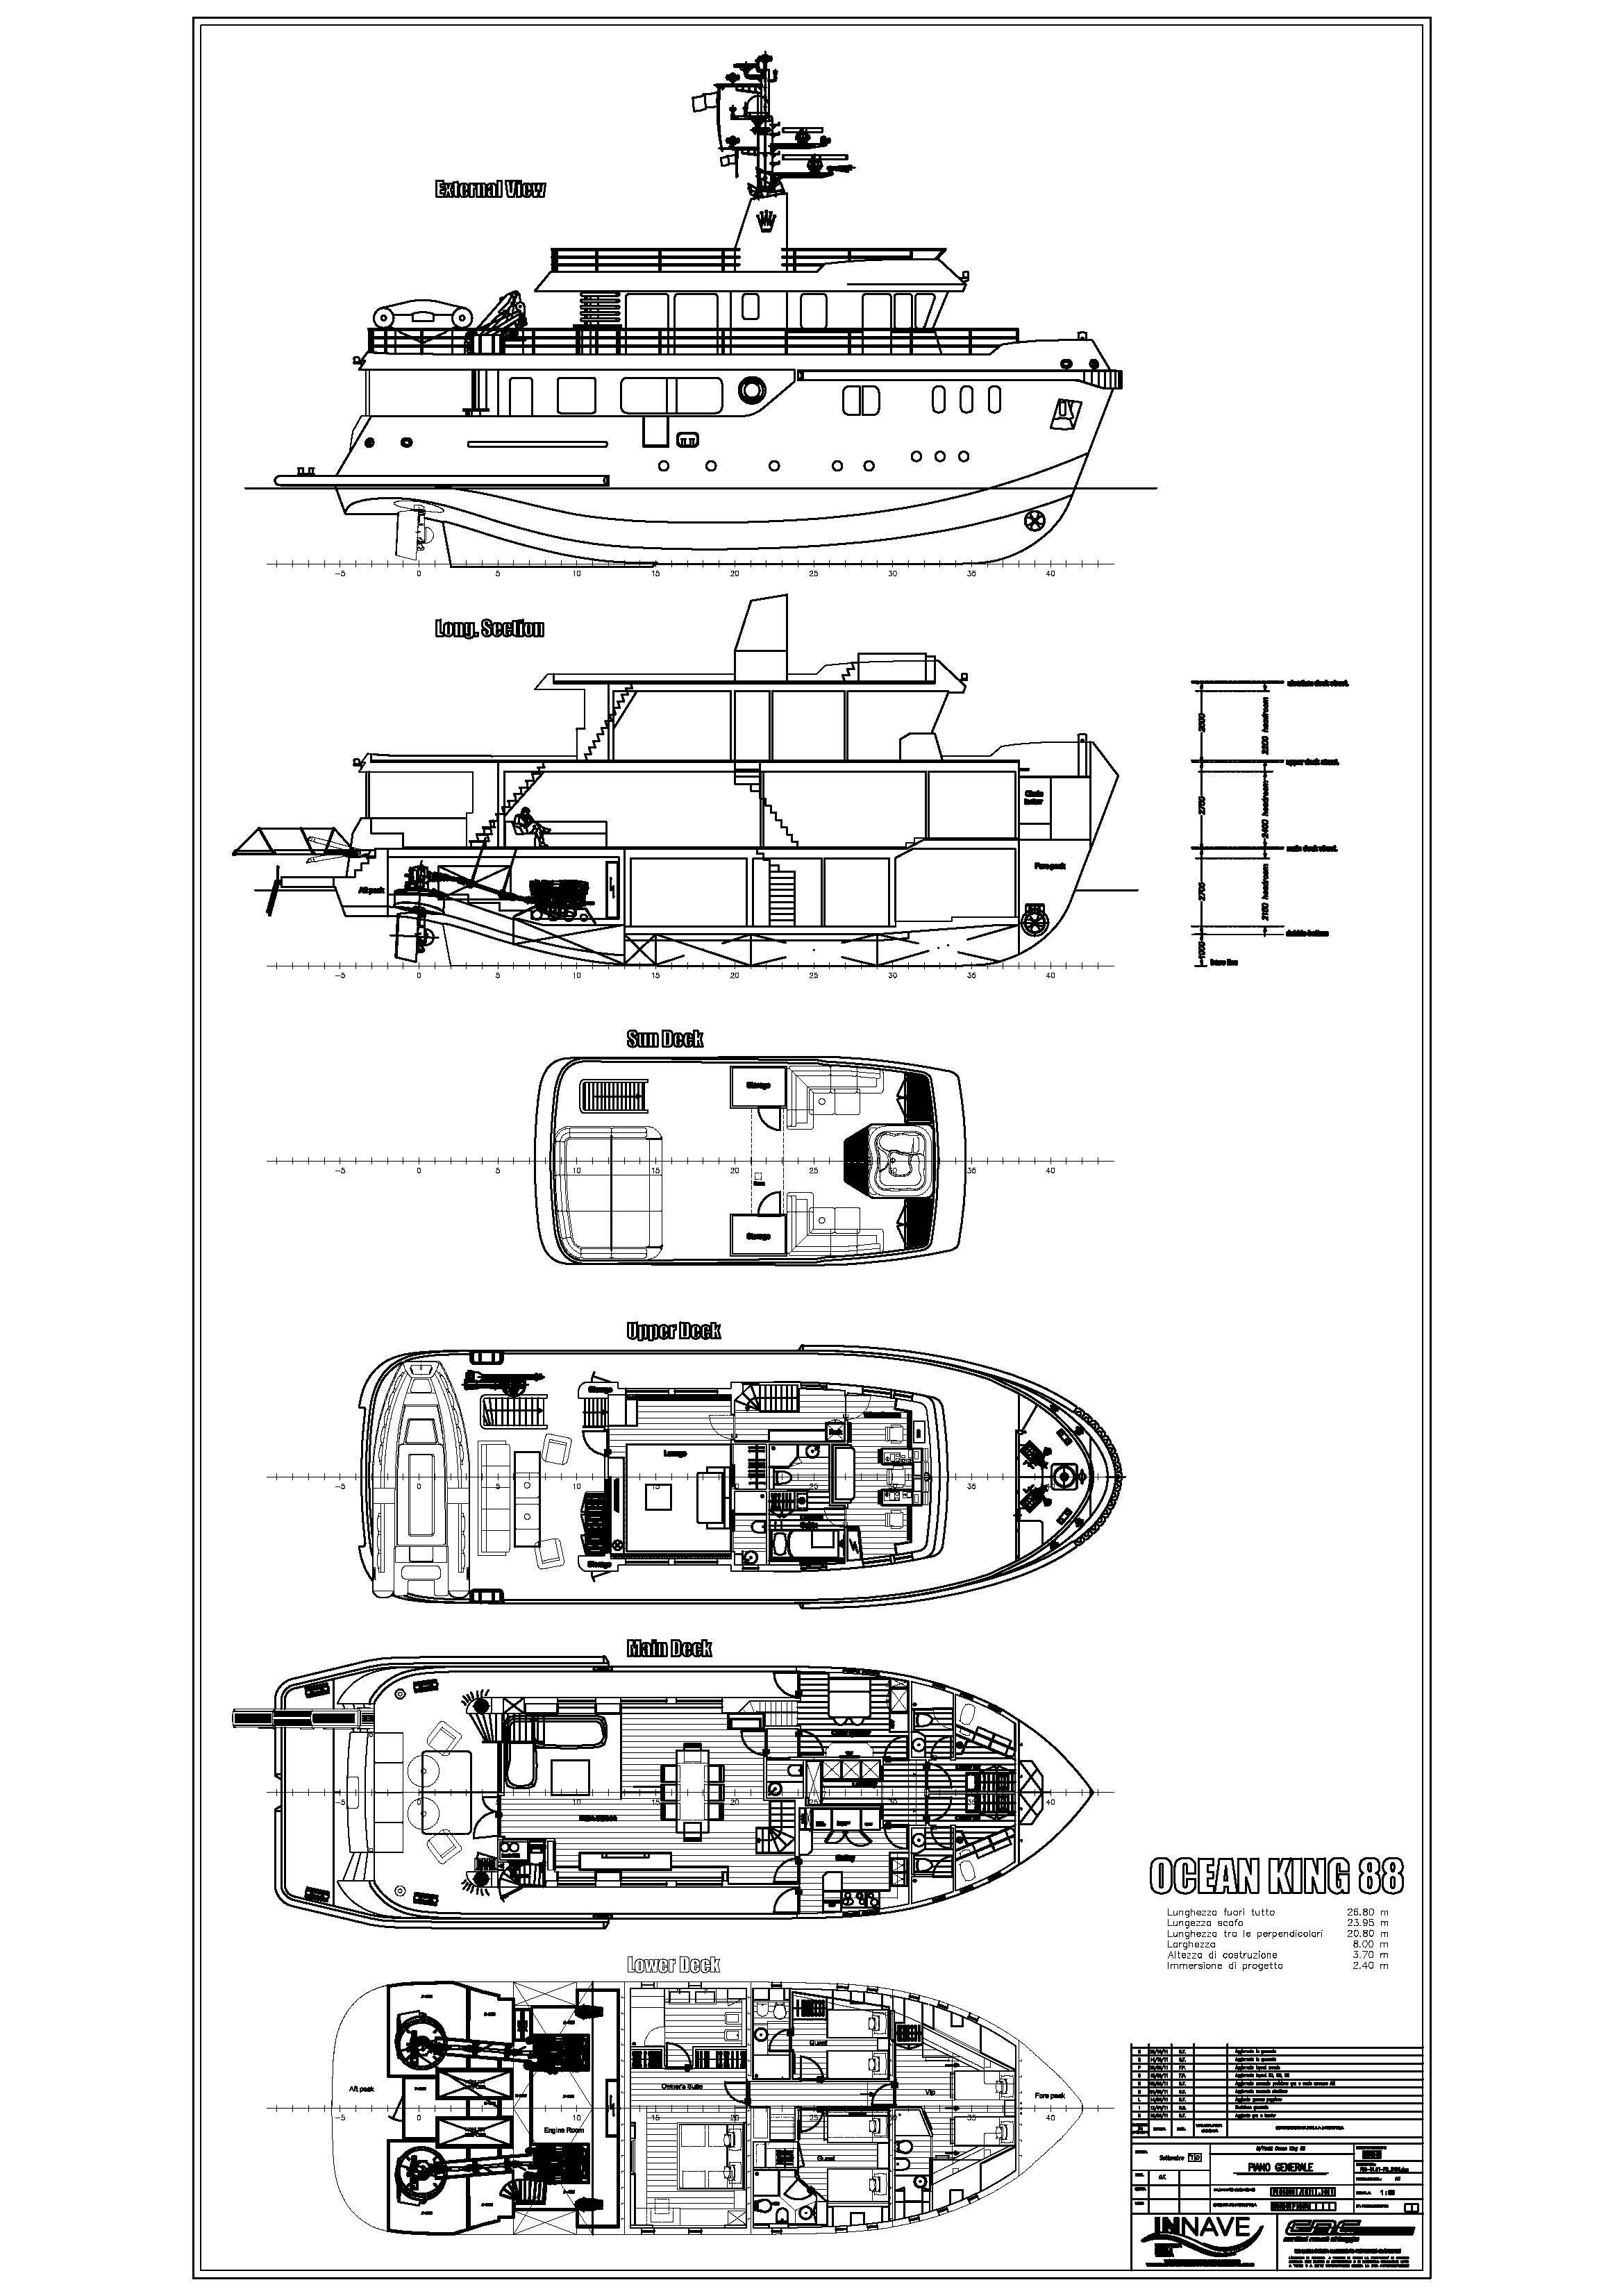 Yacht Ocean Diagrams Wiring Diagram Expert For Sailboats Labeled